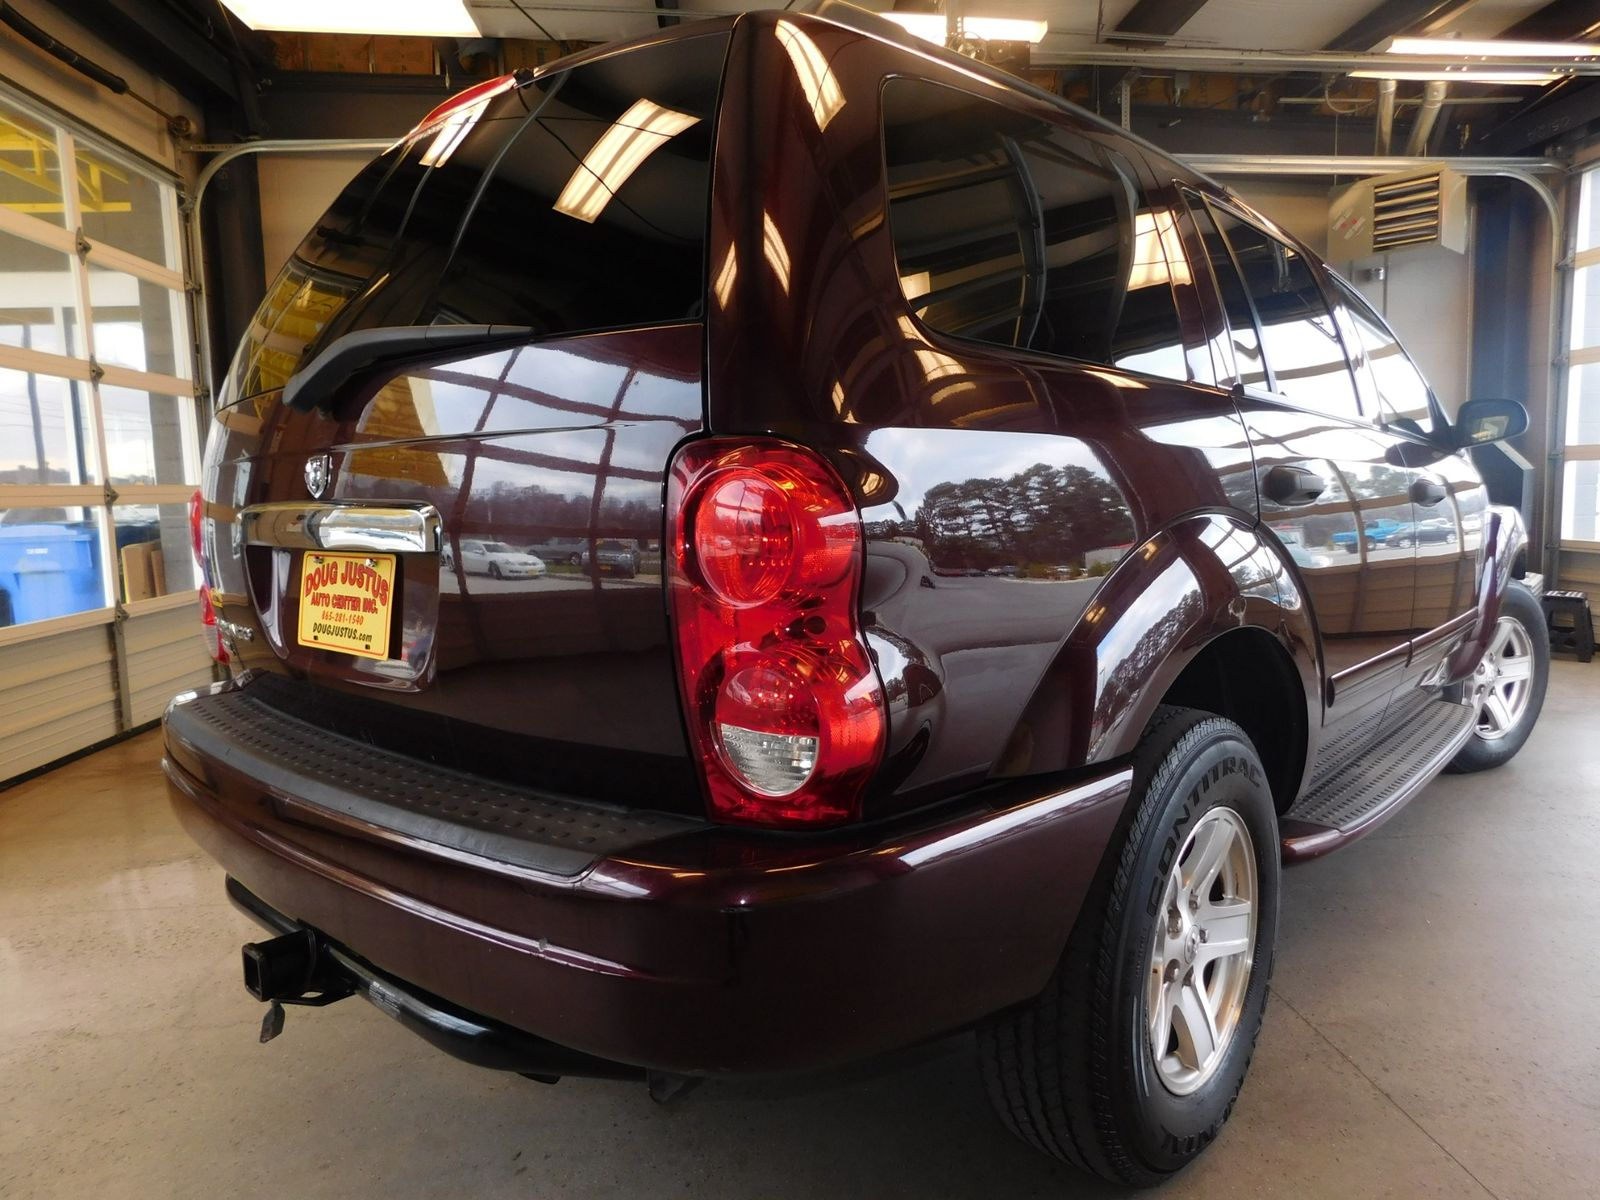 ... 2005 Dodge Durango SLT city TN Doug Justus Auto Center Inc in Airport Motor Mile ...